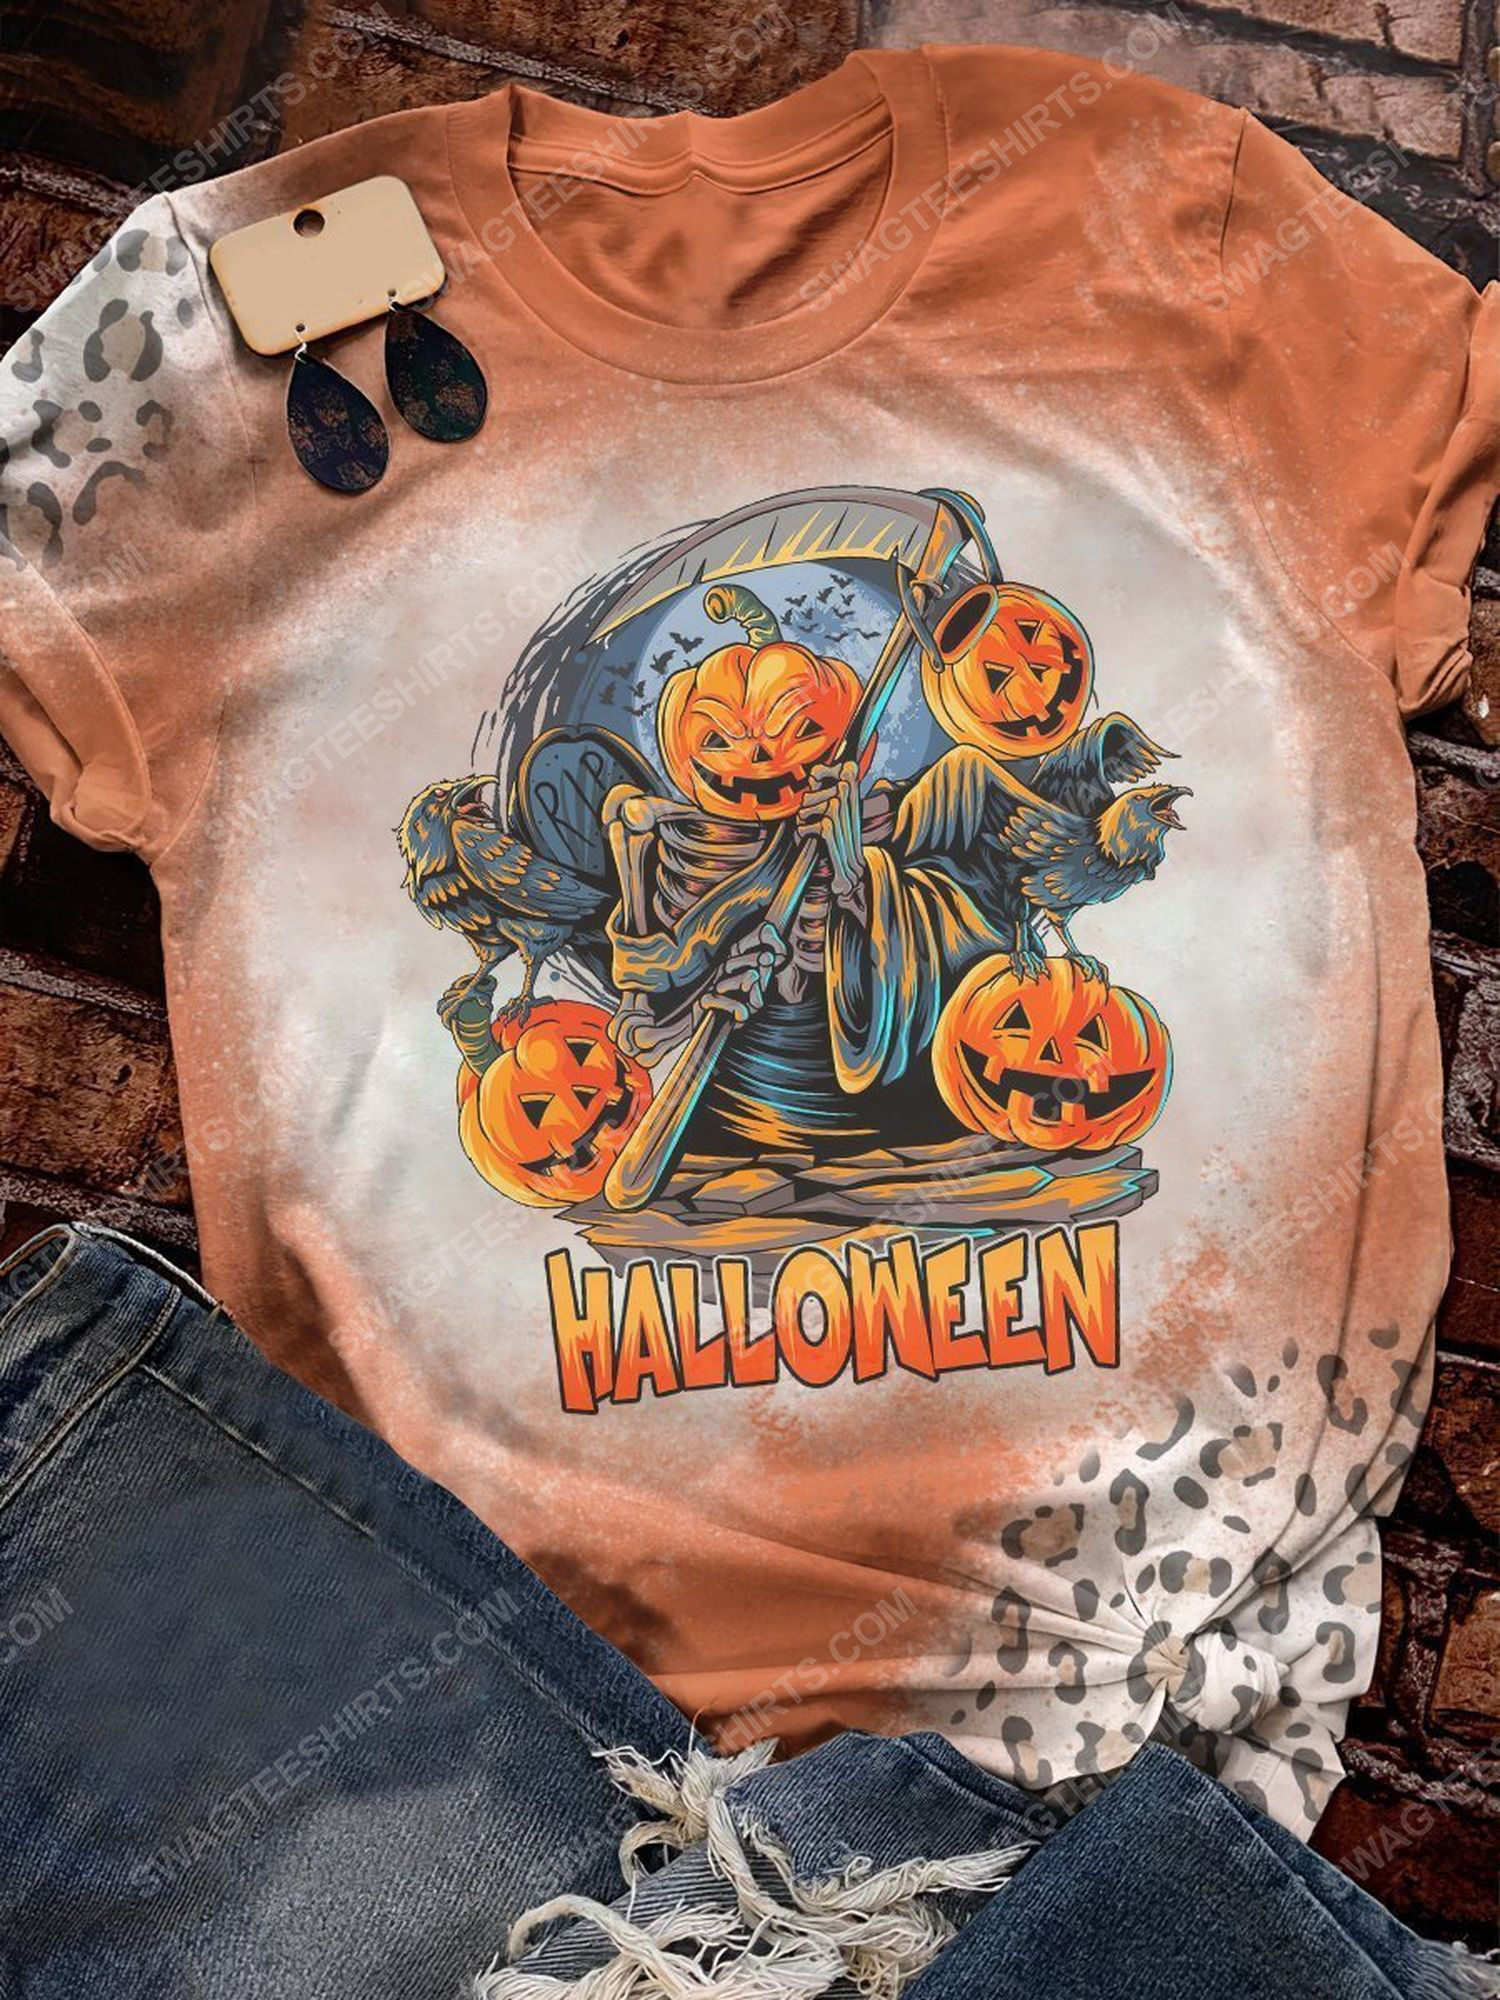 Halloween night and the death with pumpkin head shirt 1 - Copy